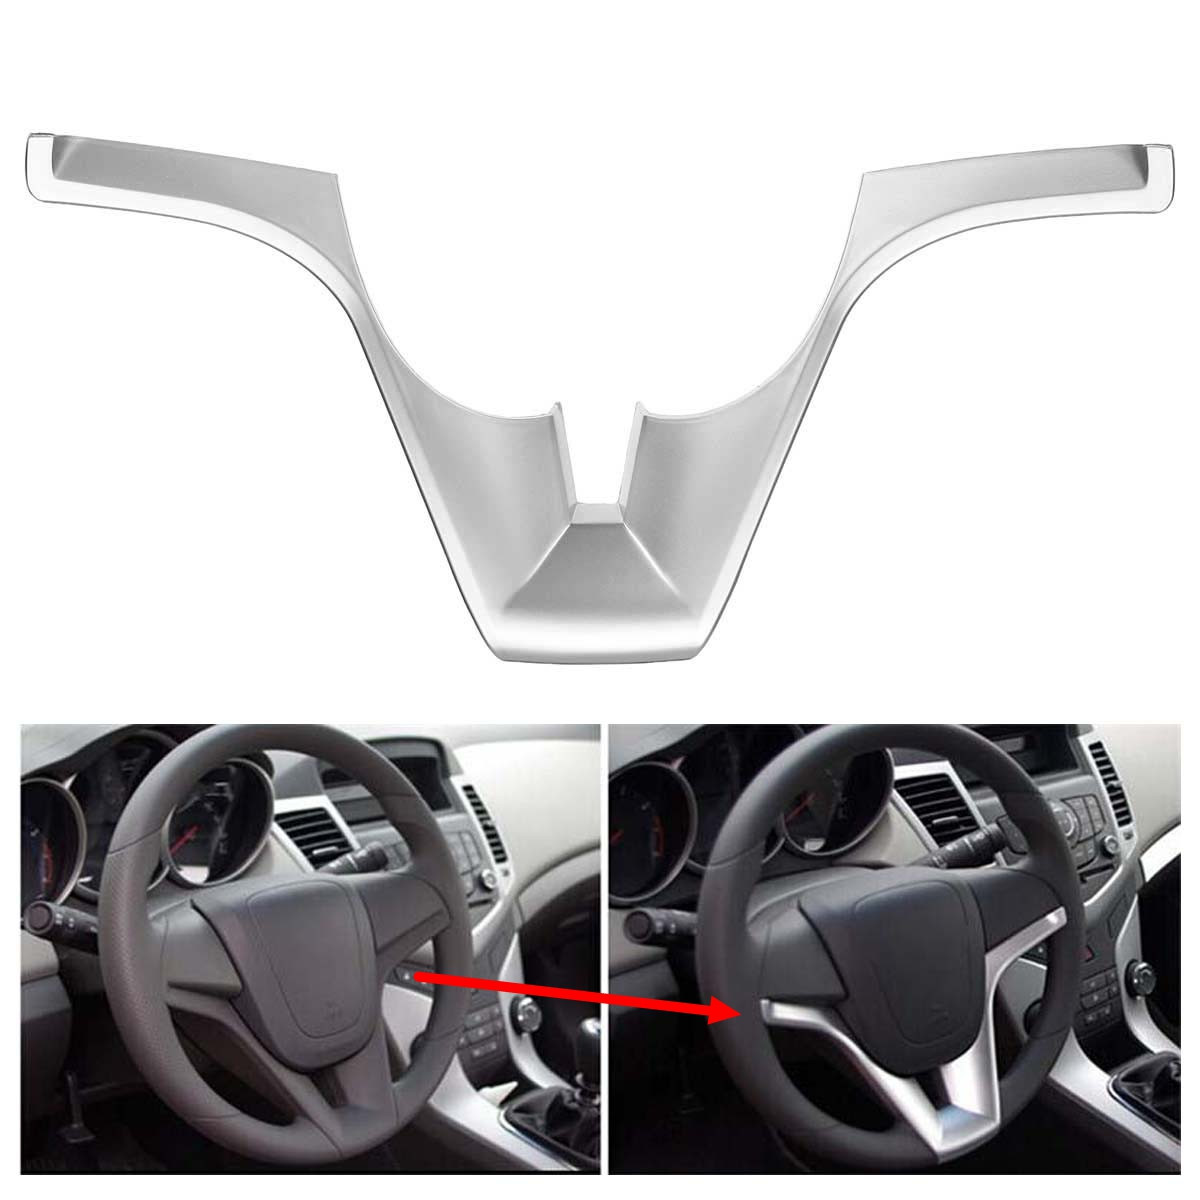 For chevrolet for cruze sedan hatchback 2011 2012 2013 2014 car steering wheel trim cover sticker